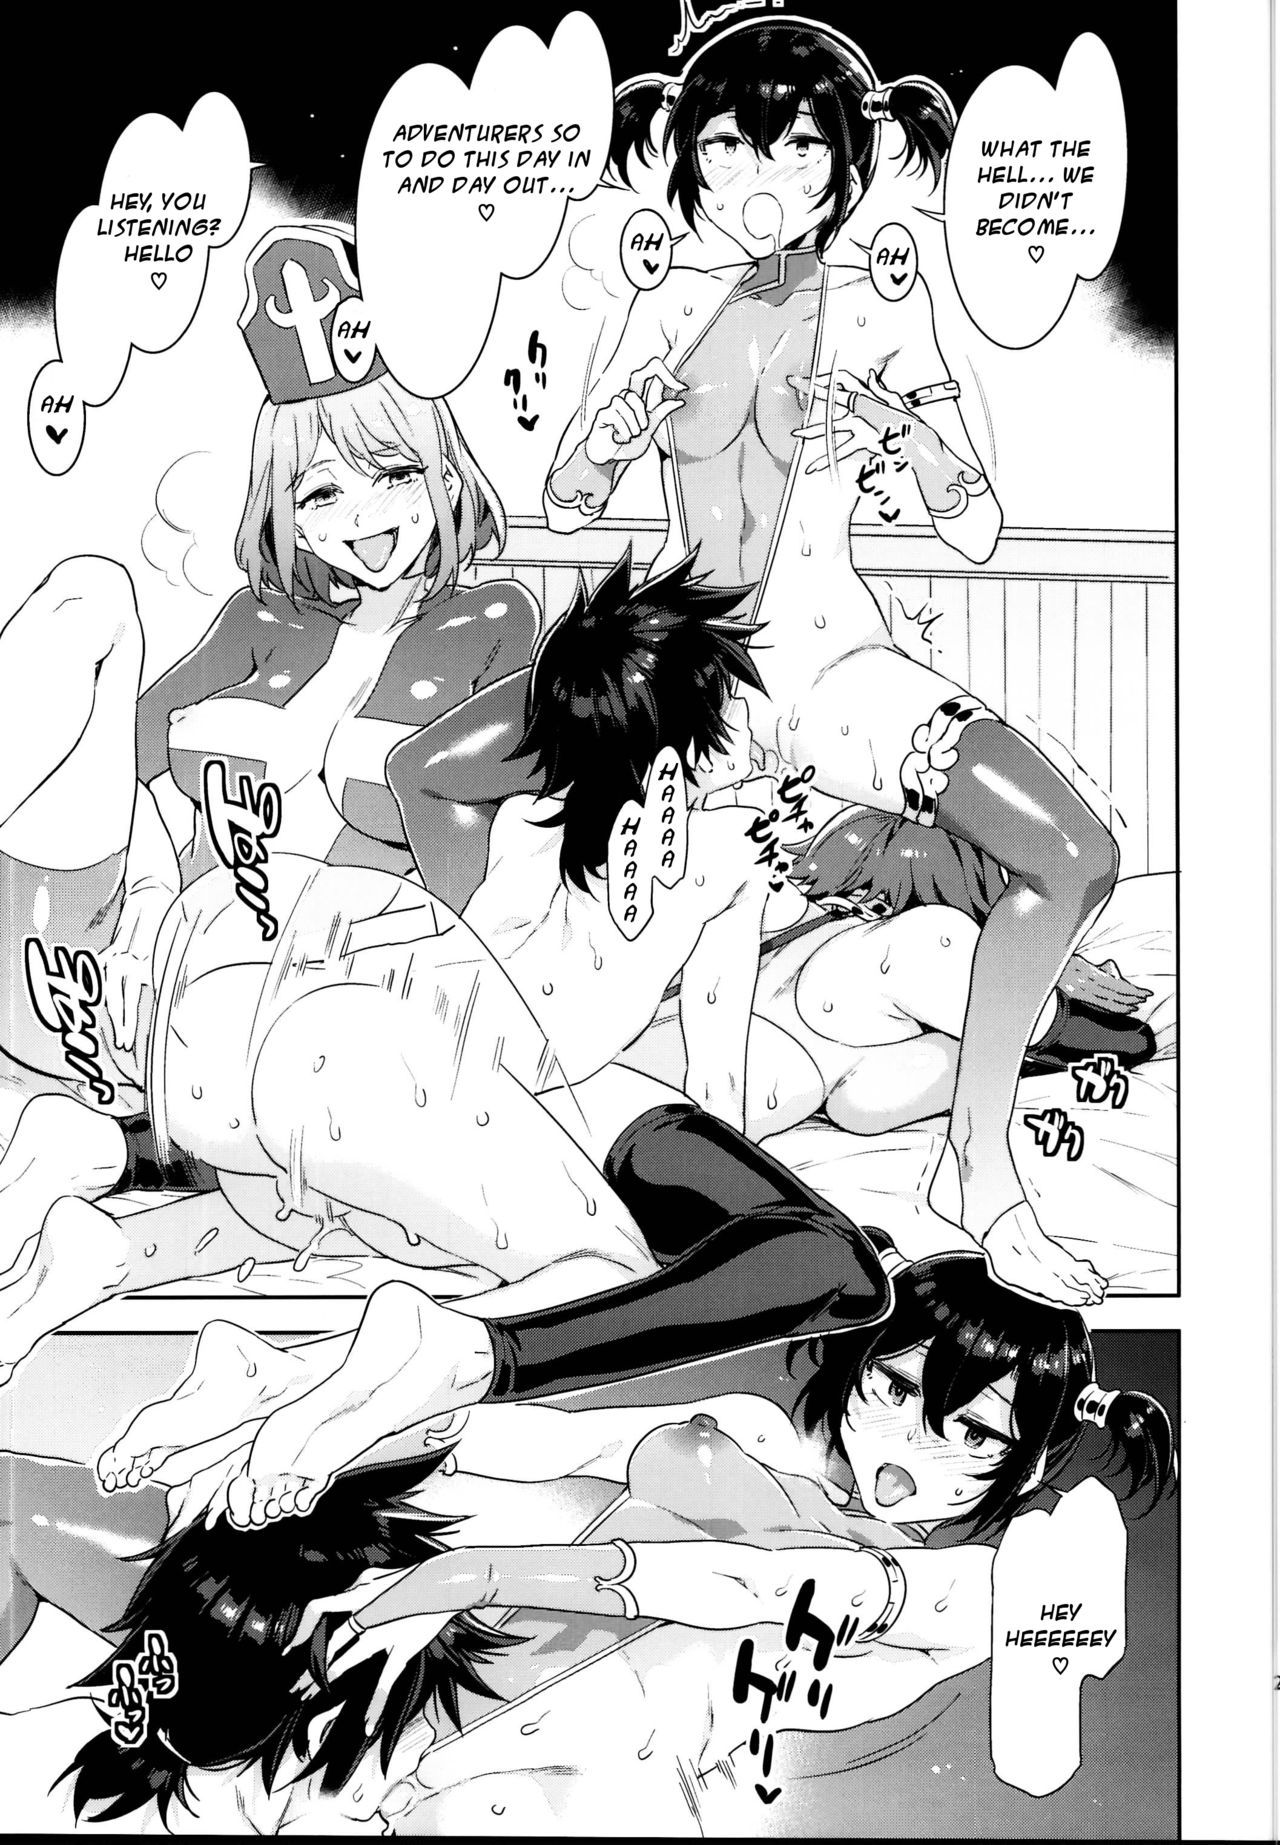 Seiyoku ni Shoujiki Sugiru Shota Yuusha | The boy hero who was too frank with his lust/Seiyoku ni Shoujiki Sugiru Shota Yuusha page 23